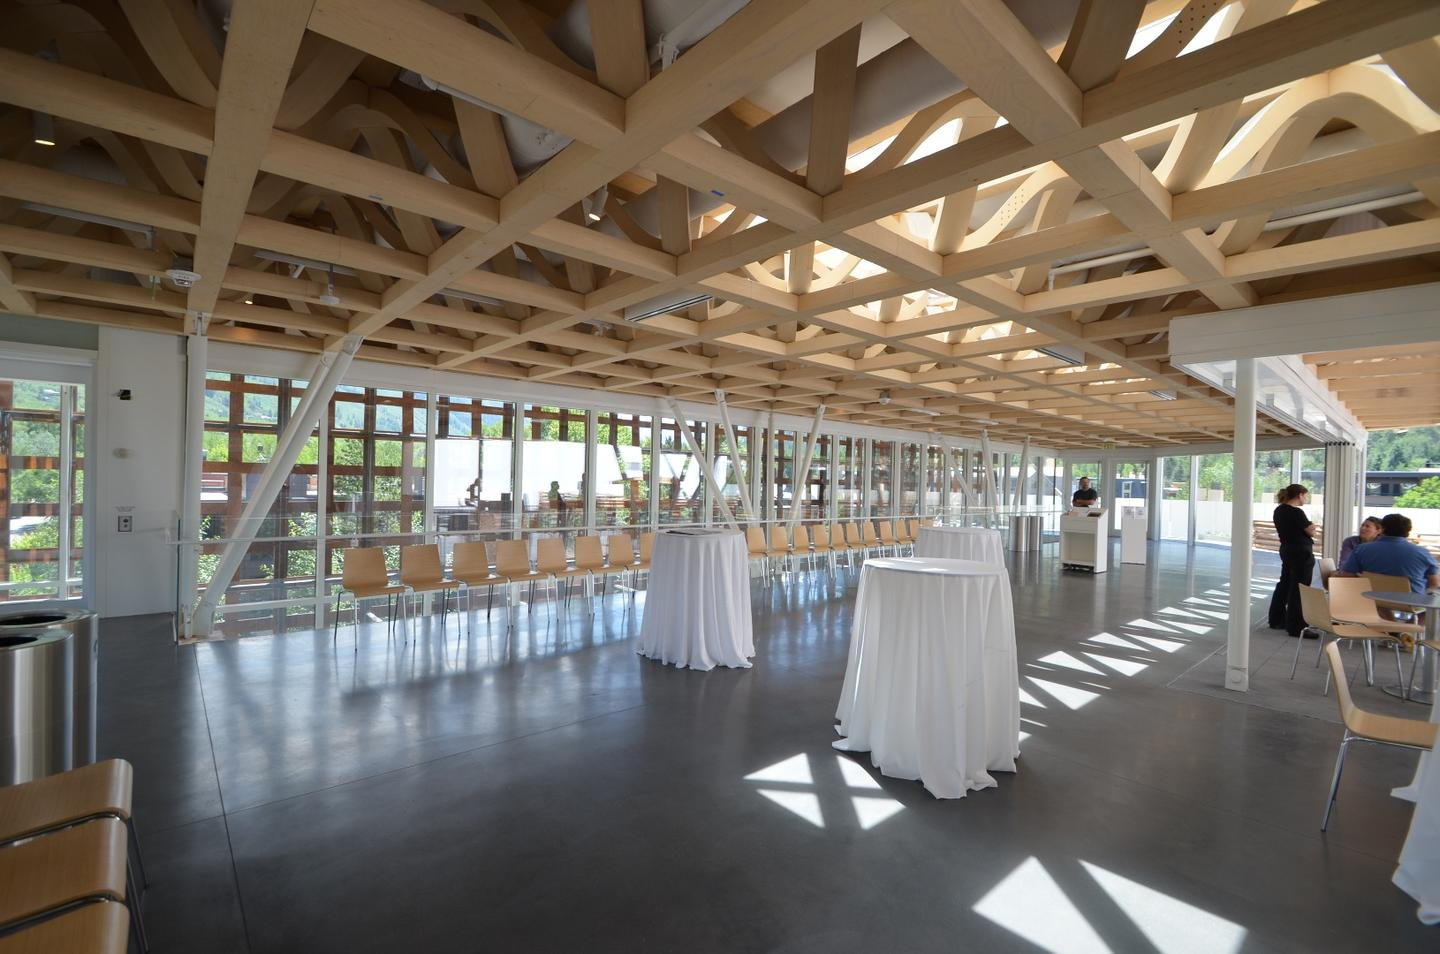 The Aspen Art Museum, by Shigeru Ban Architects won the Regional Excellence award